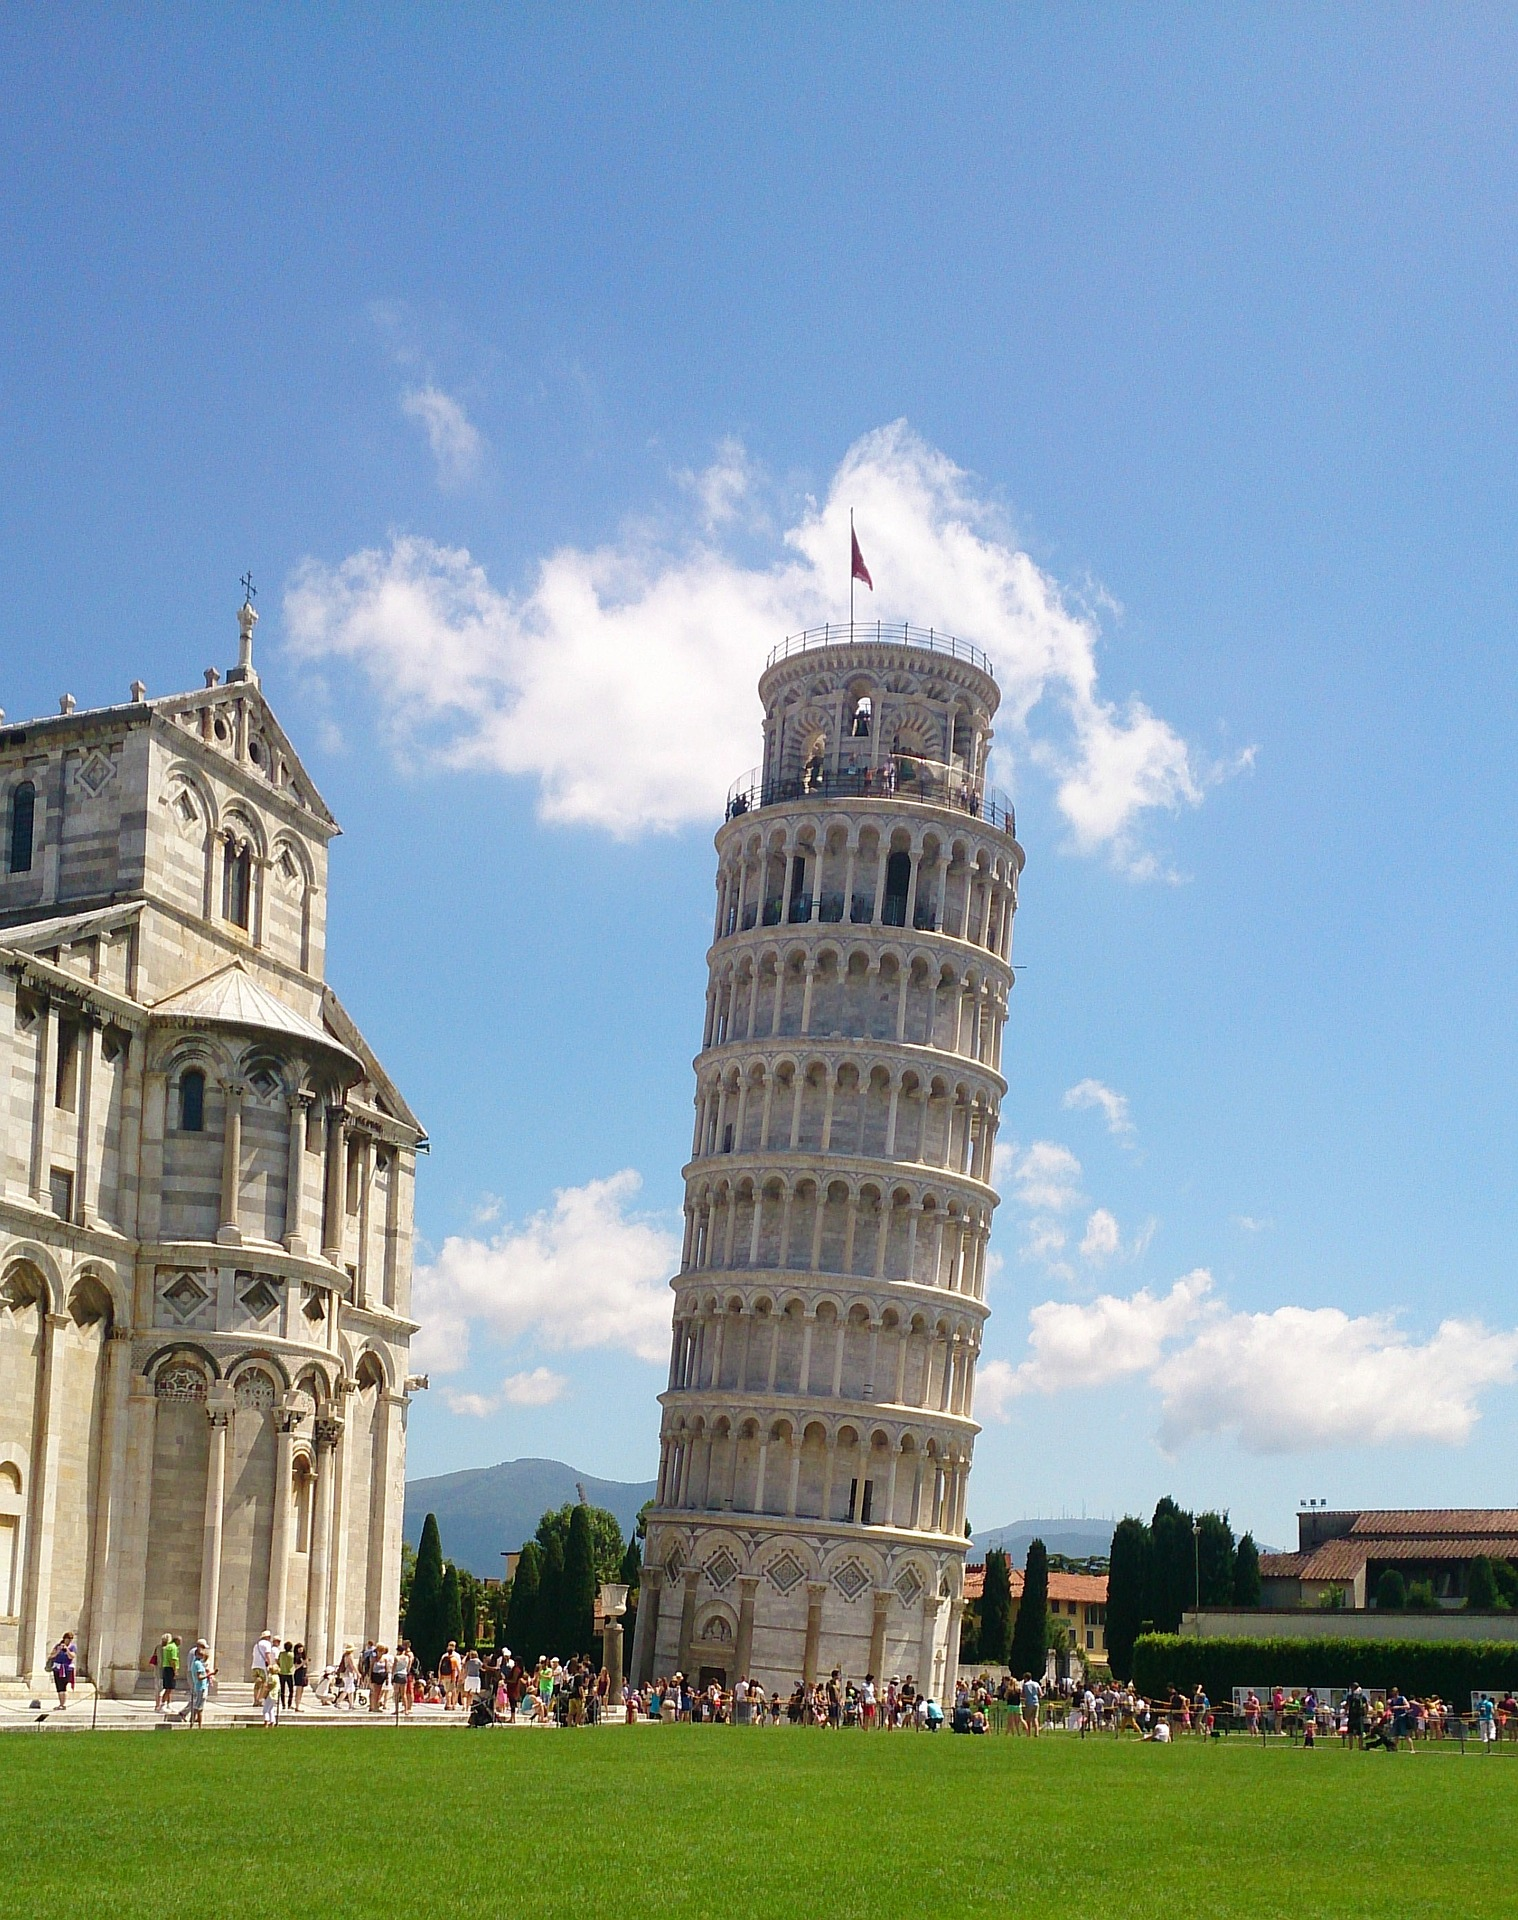 Leaning Tower of Pisa, Italy 2